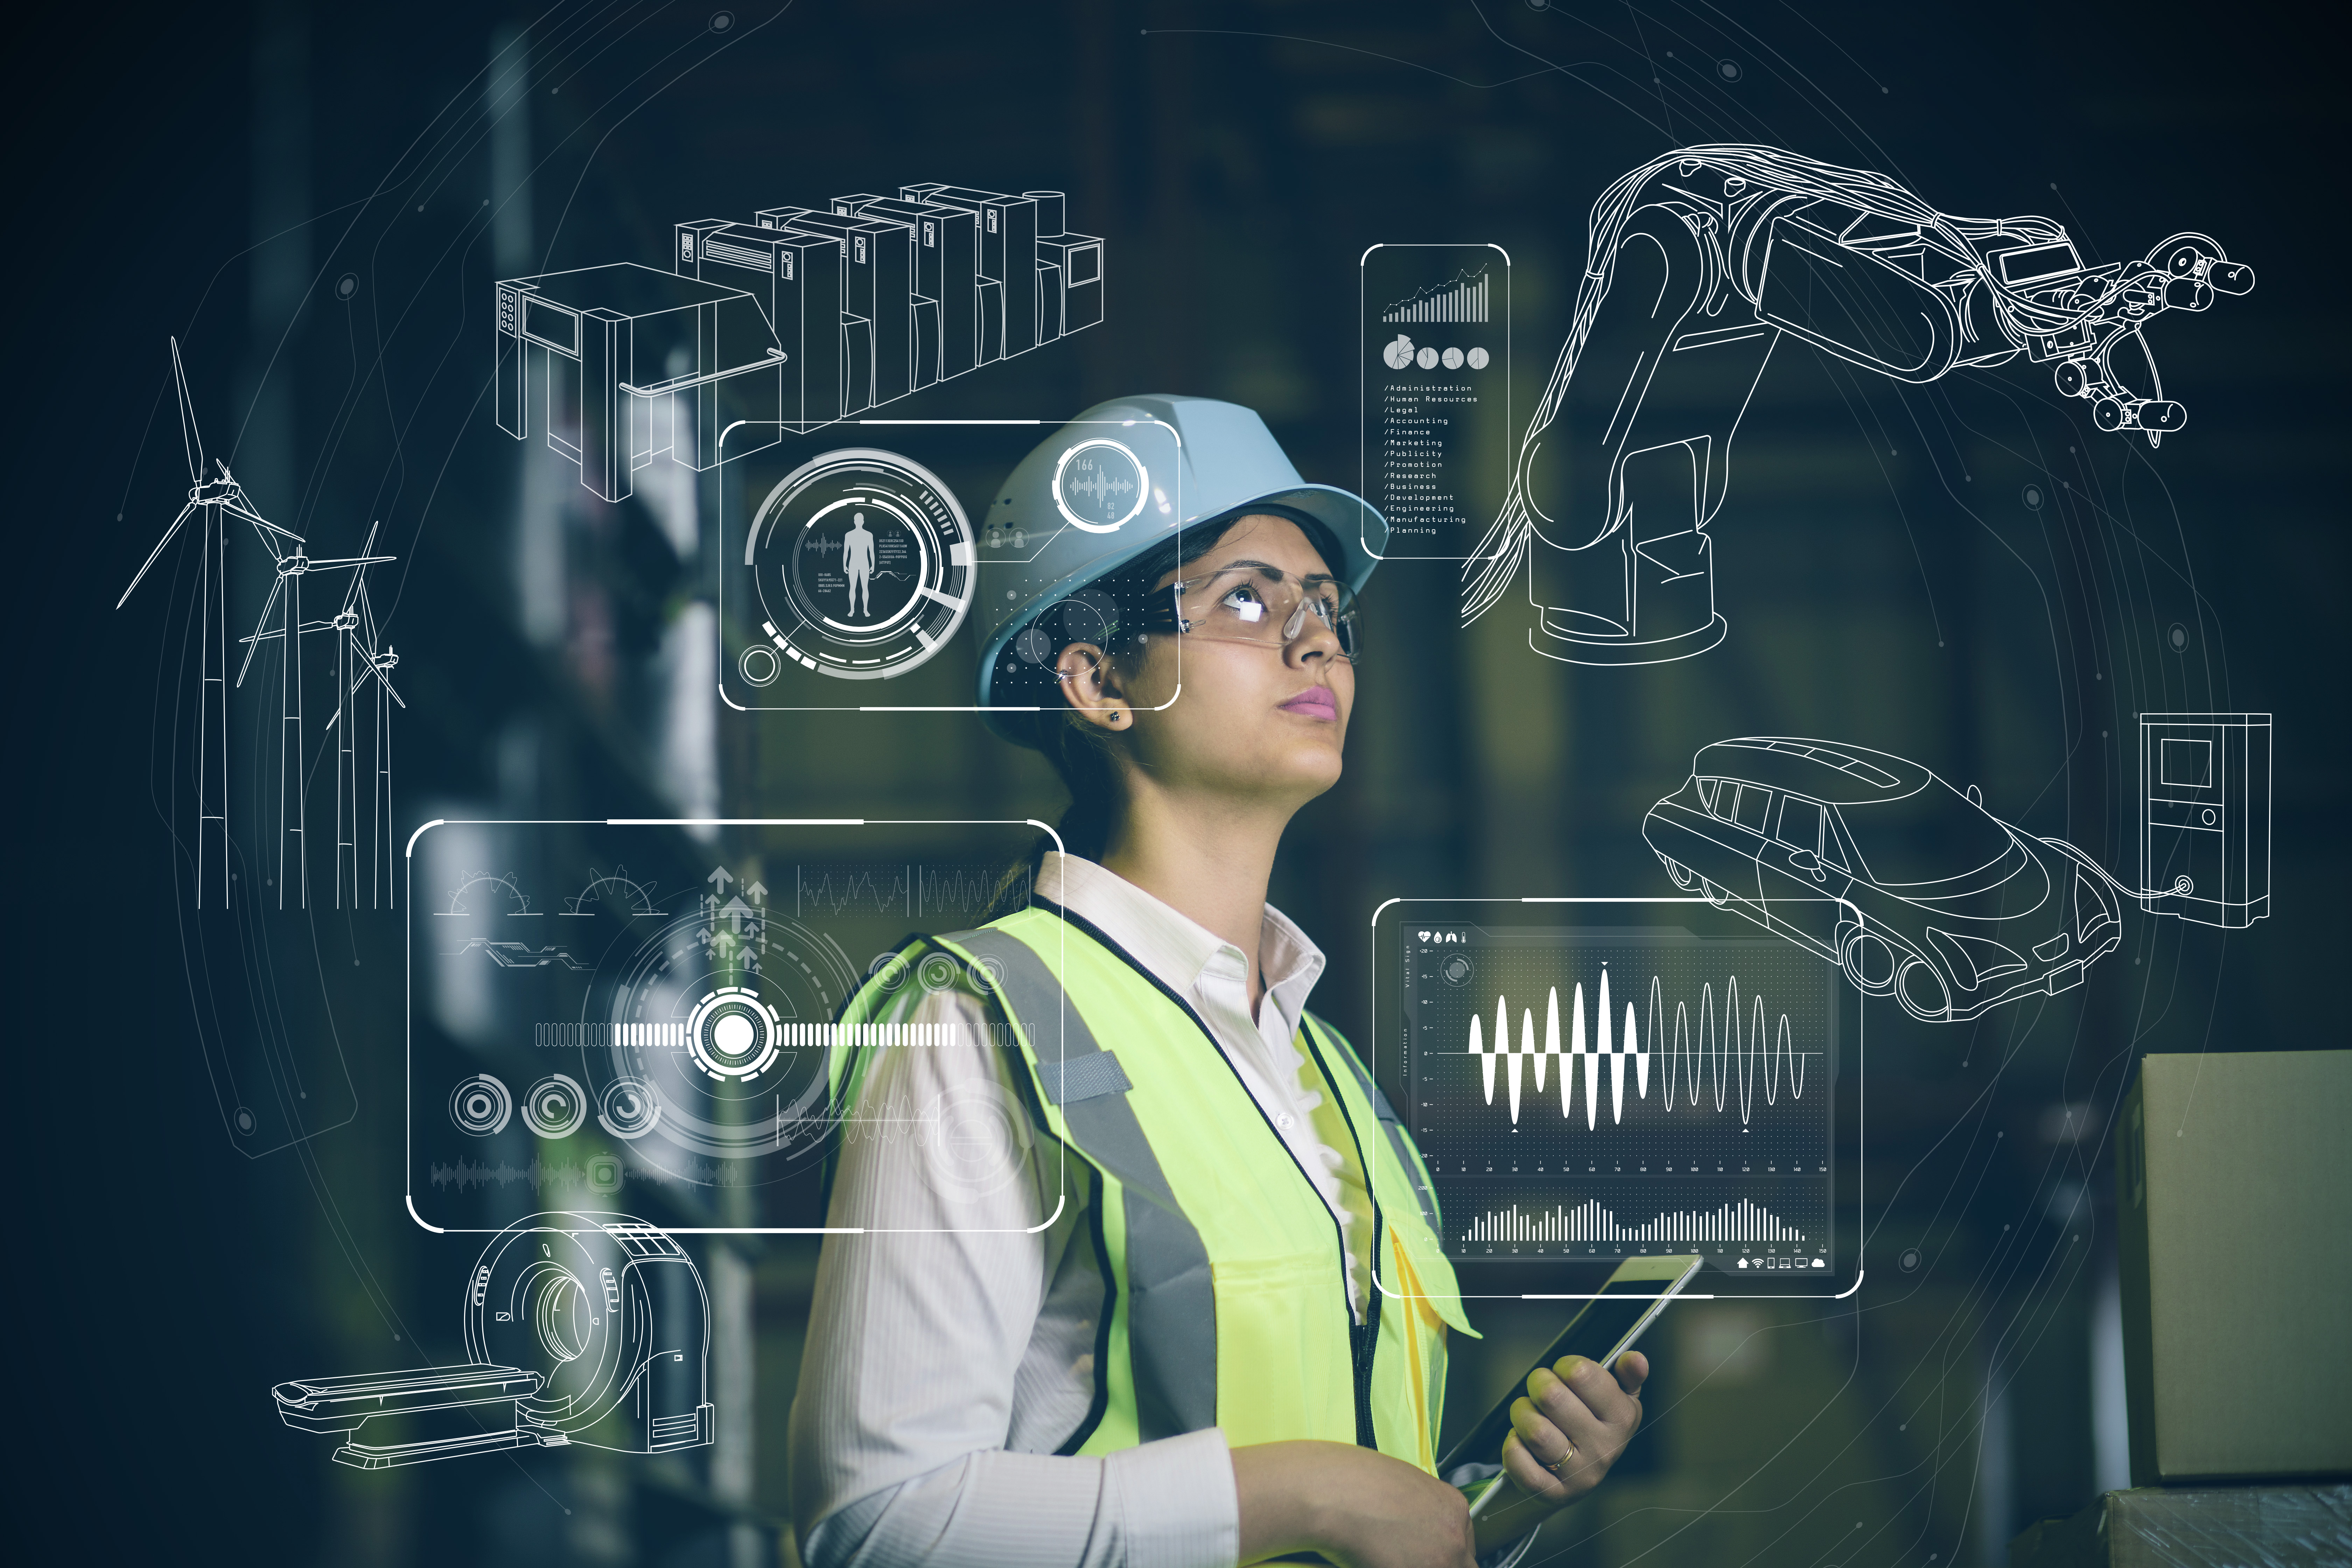 engineer and various business information. Internet of things industry.